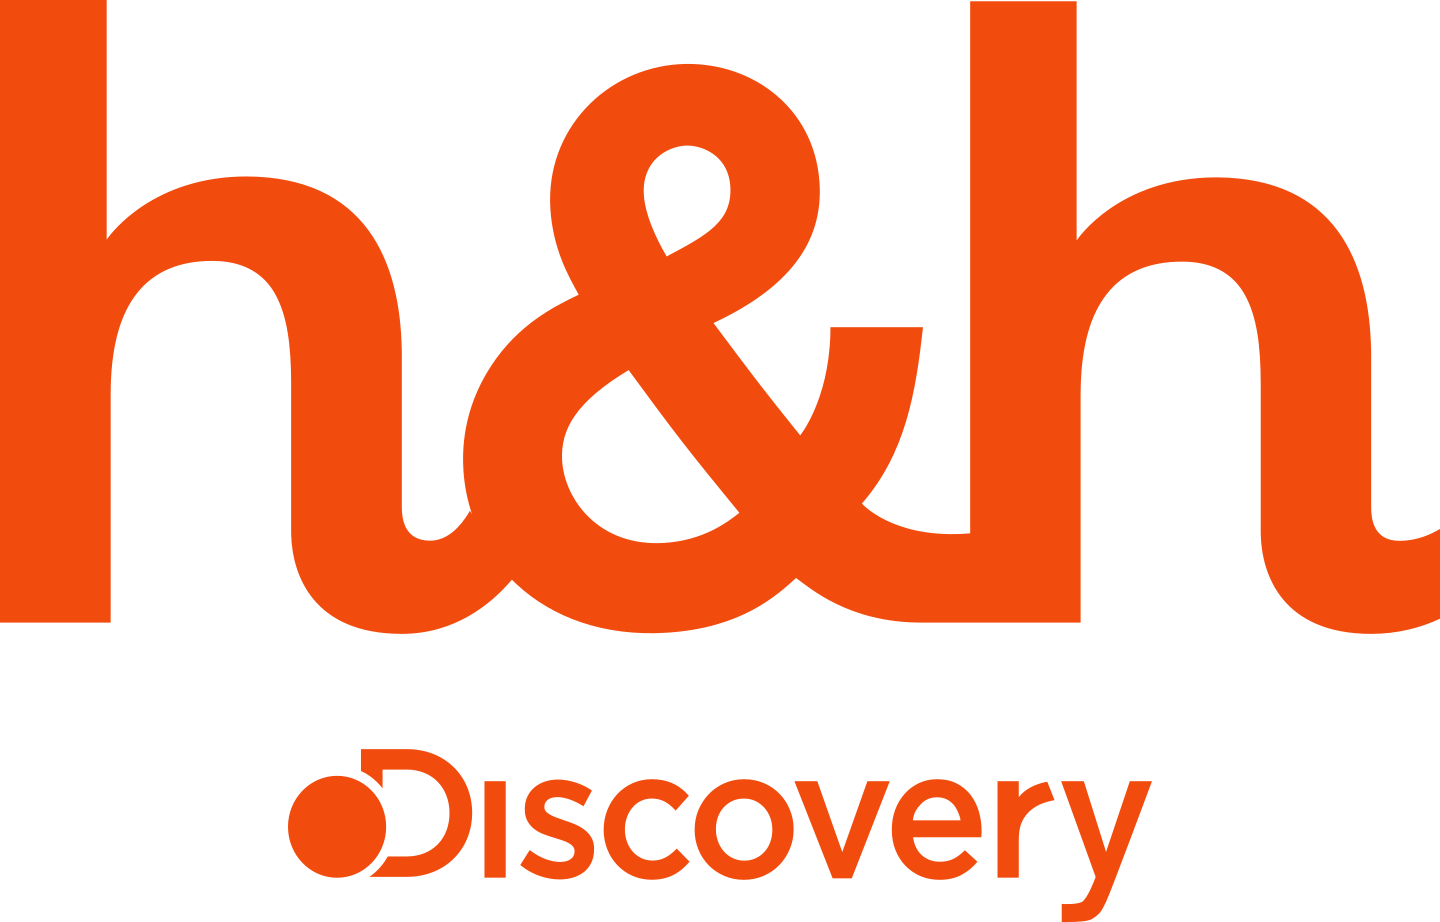 discovery home and health logo 2 - Discovery Home & Health Logo